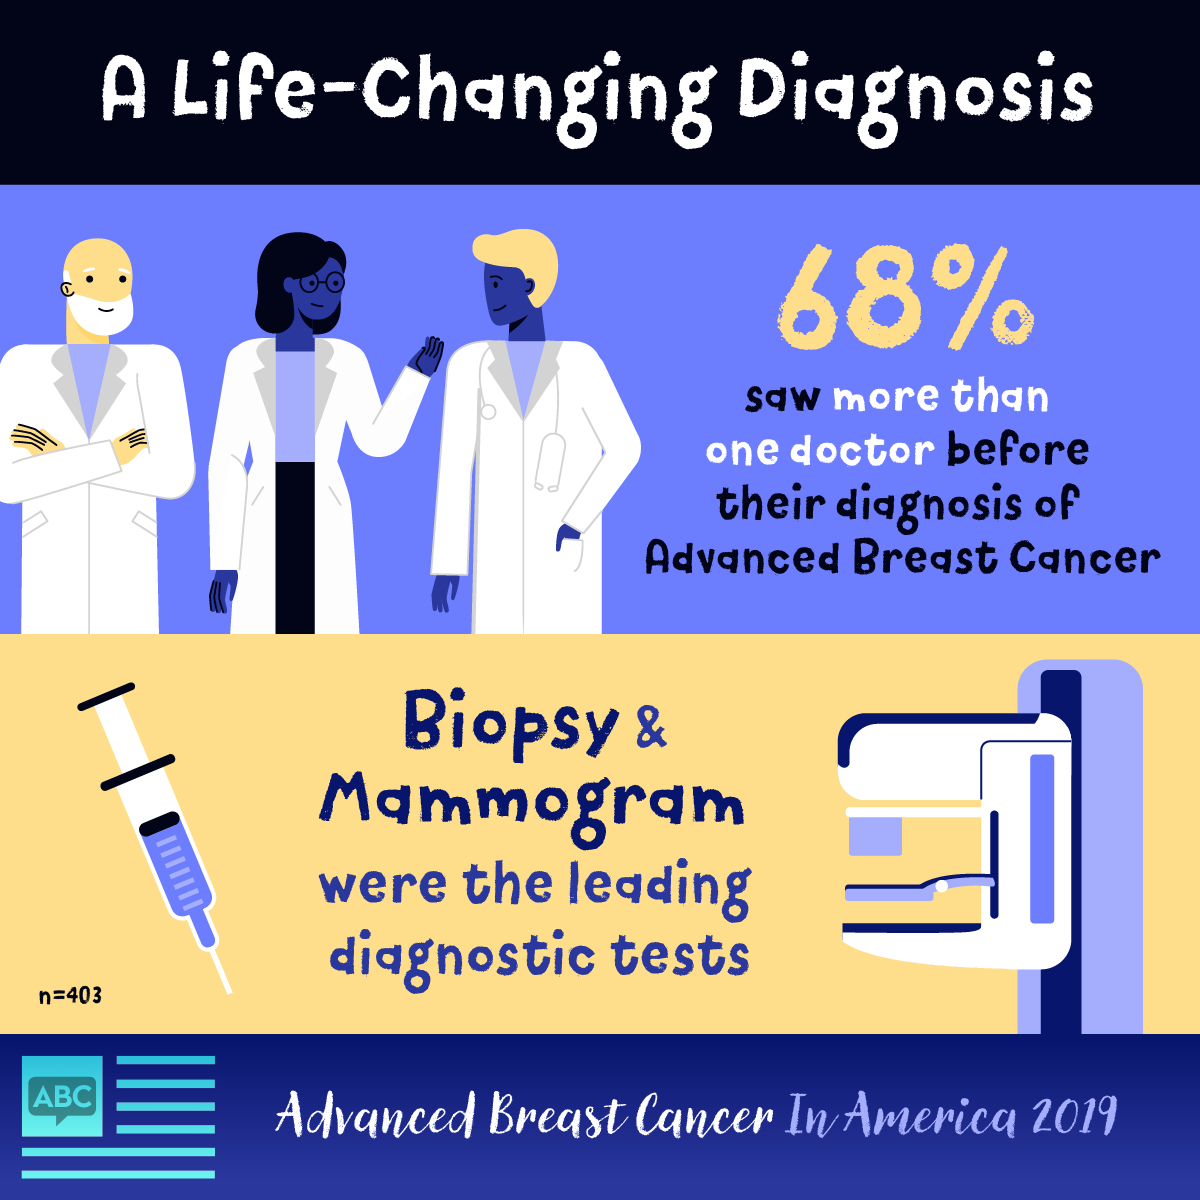 68% saw more than 1 doctor before their diagnosis and for most, biopsy and mammogram were most commonly used.